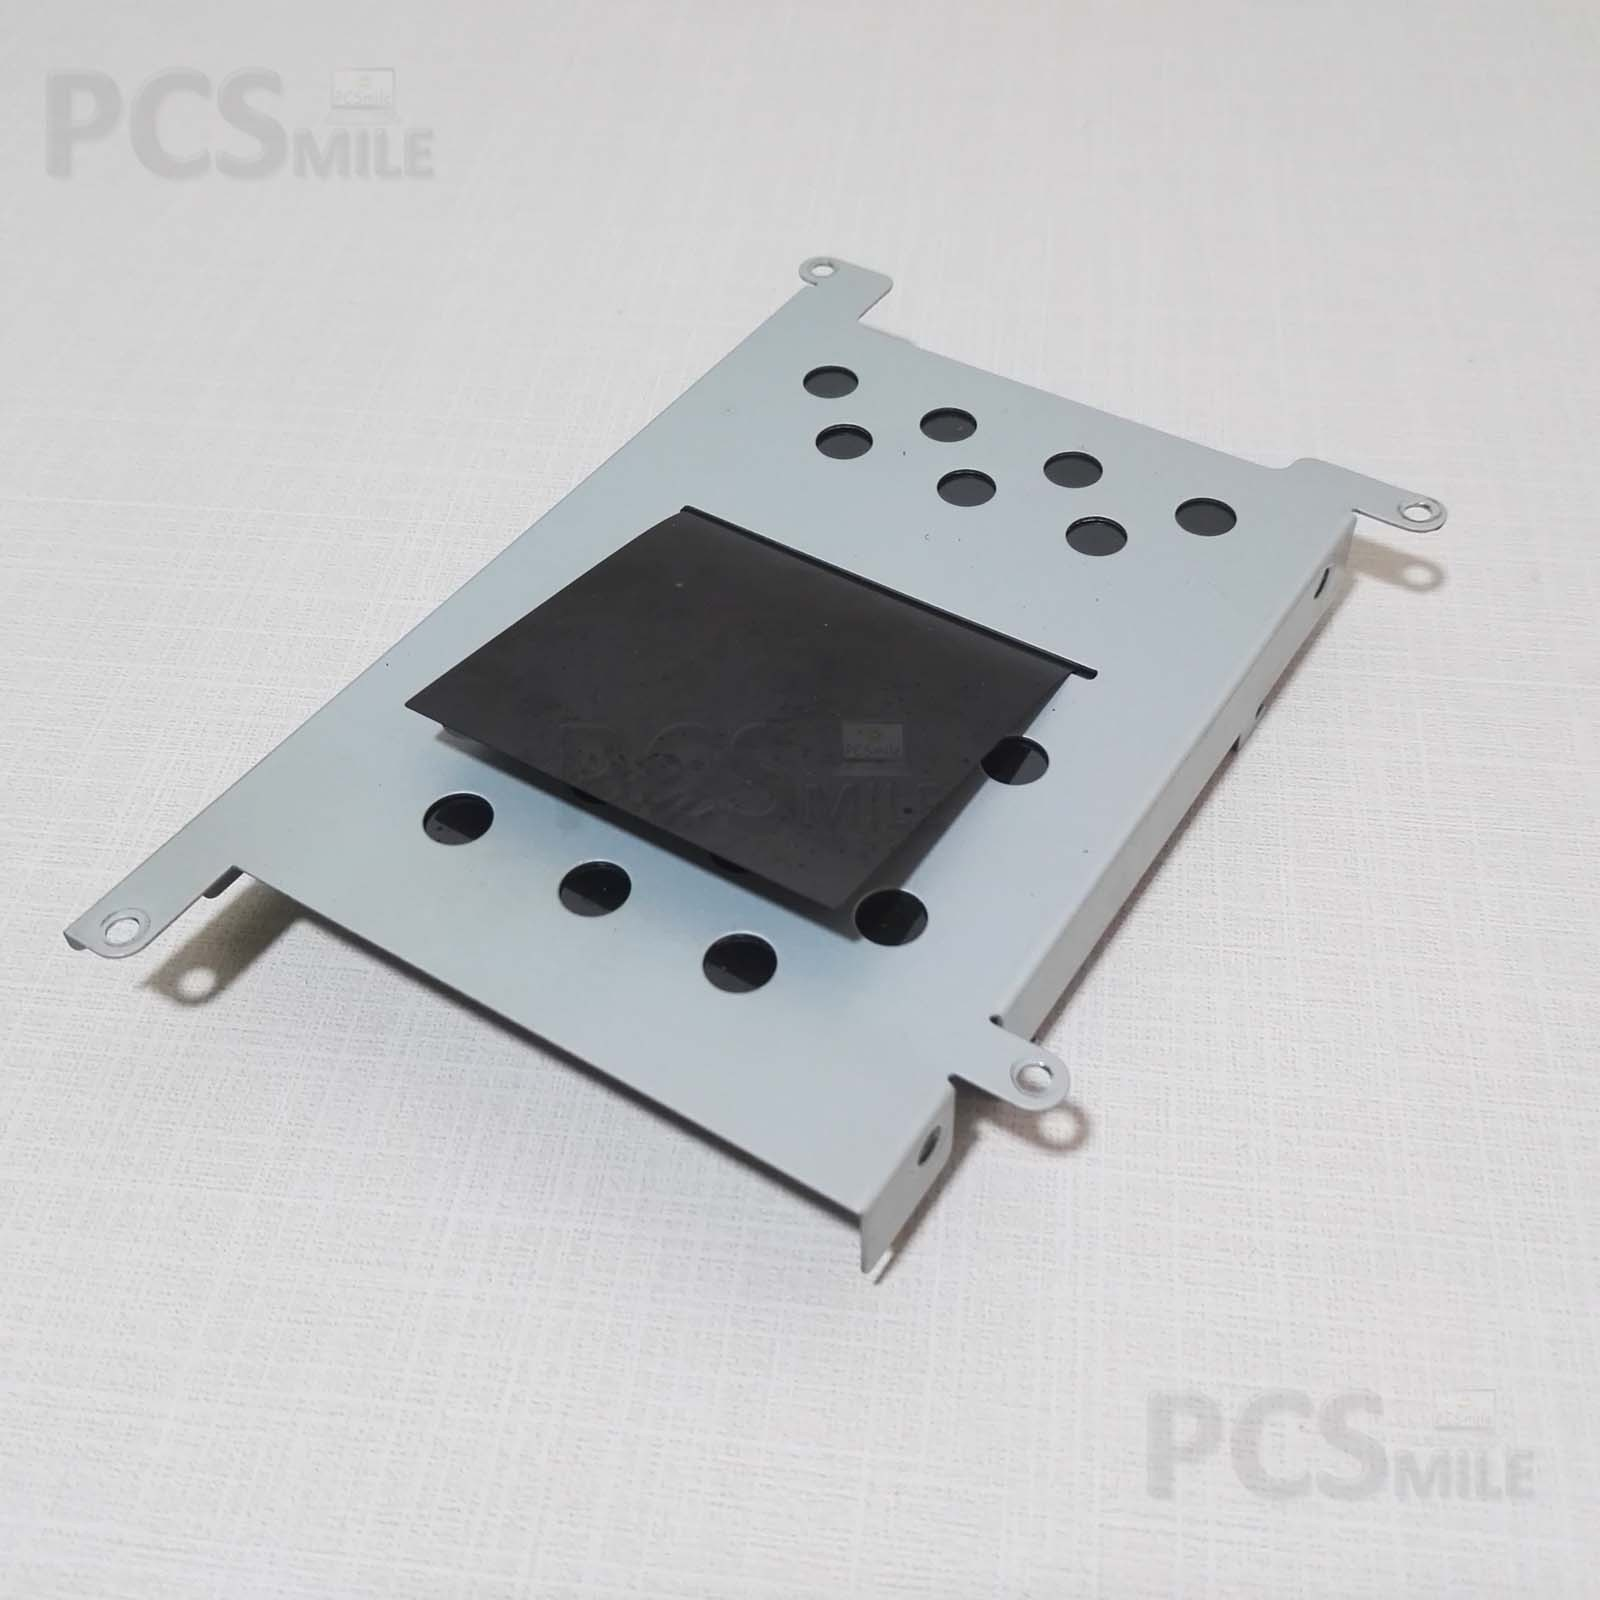 Carrellino hard disk Asus K50C Caddy slitta supporto HD disco rigido